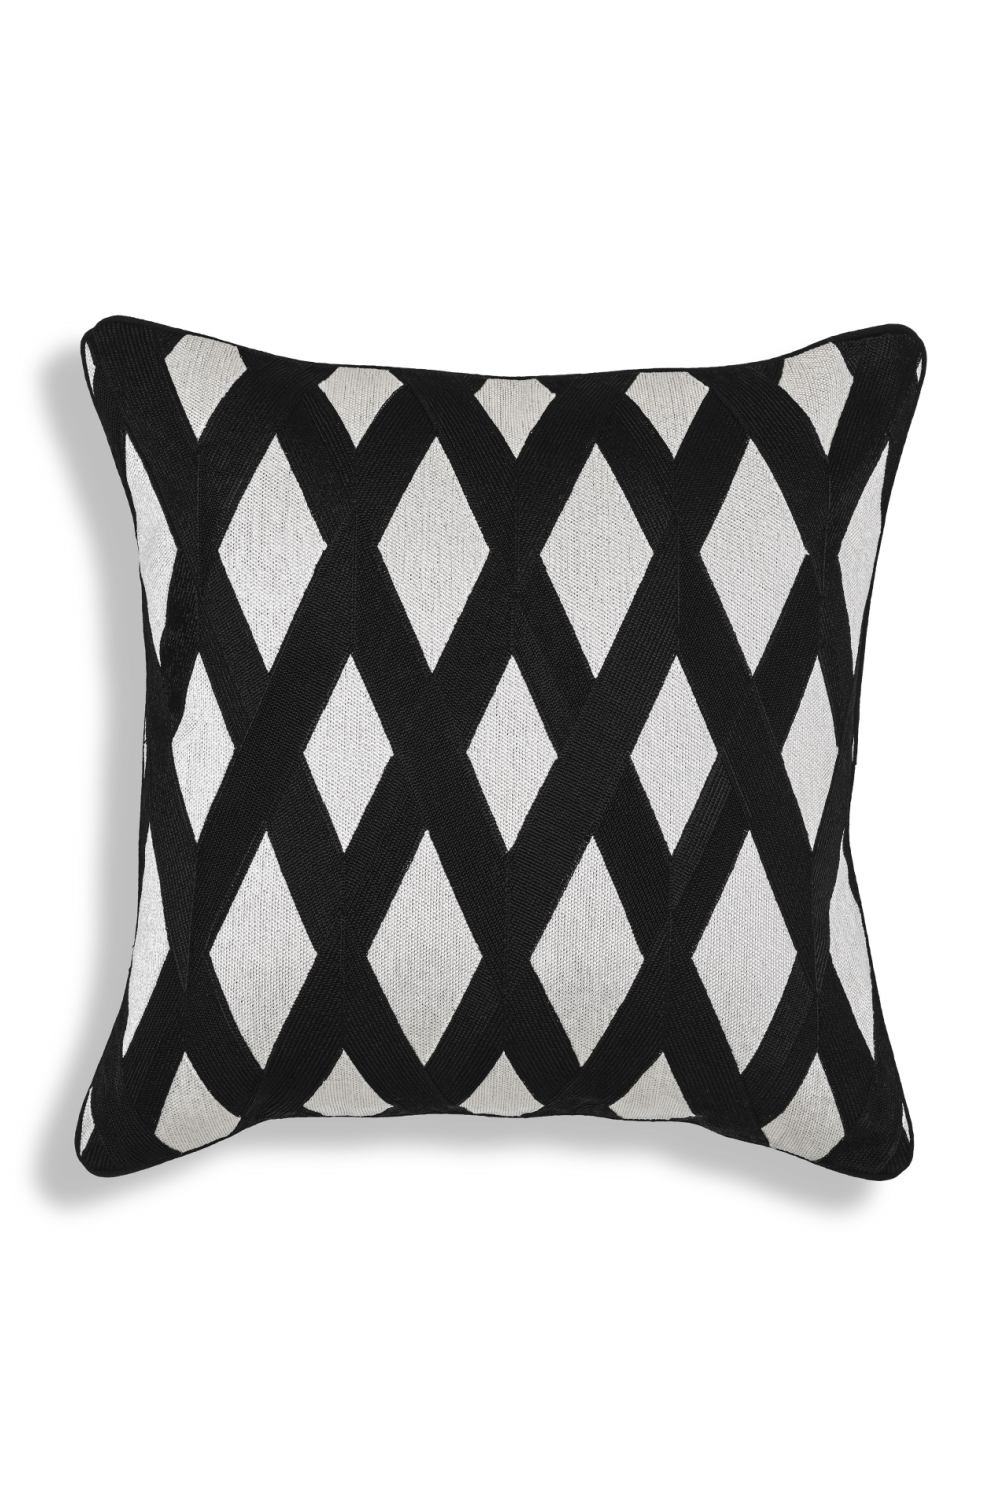 Diamond Pattern Square Pillow | Eichholtz Splender | OROA